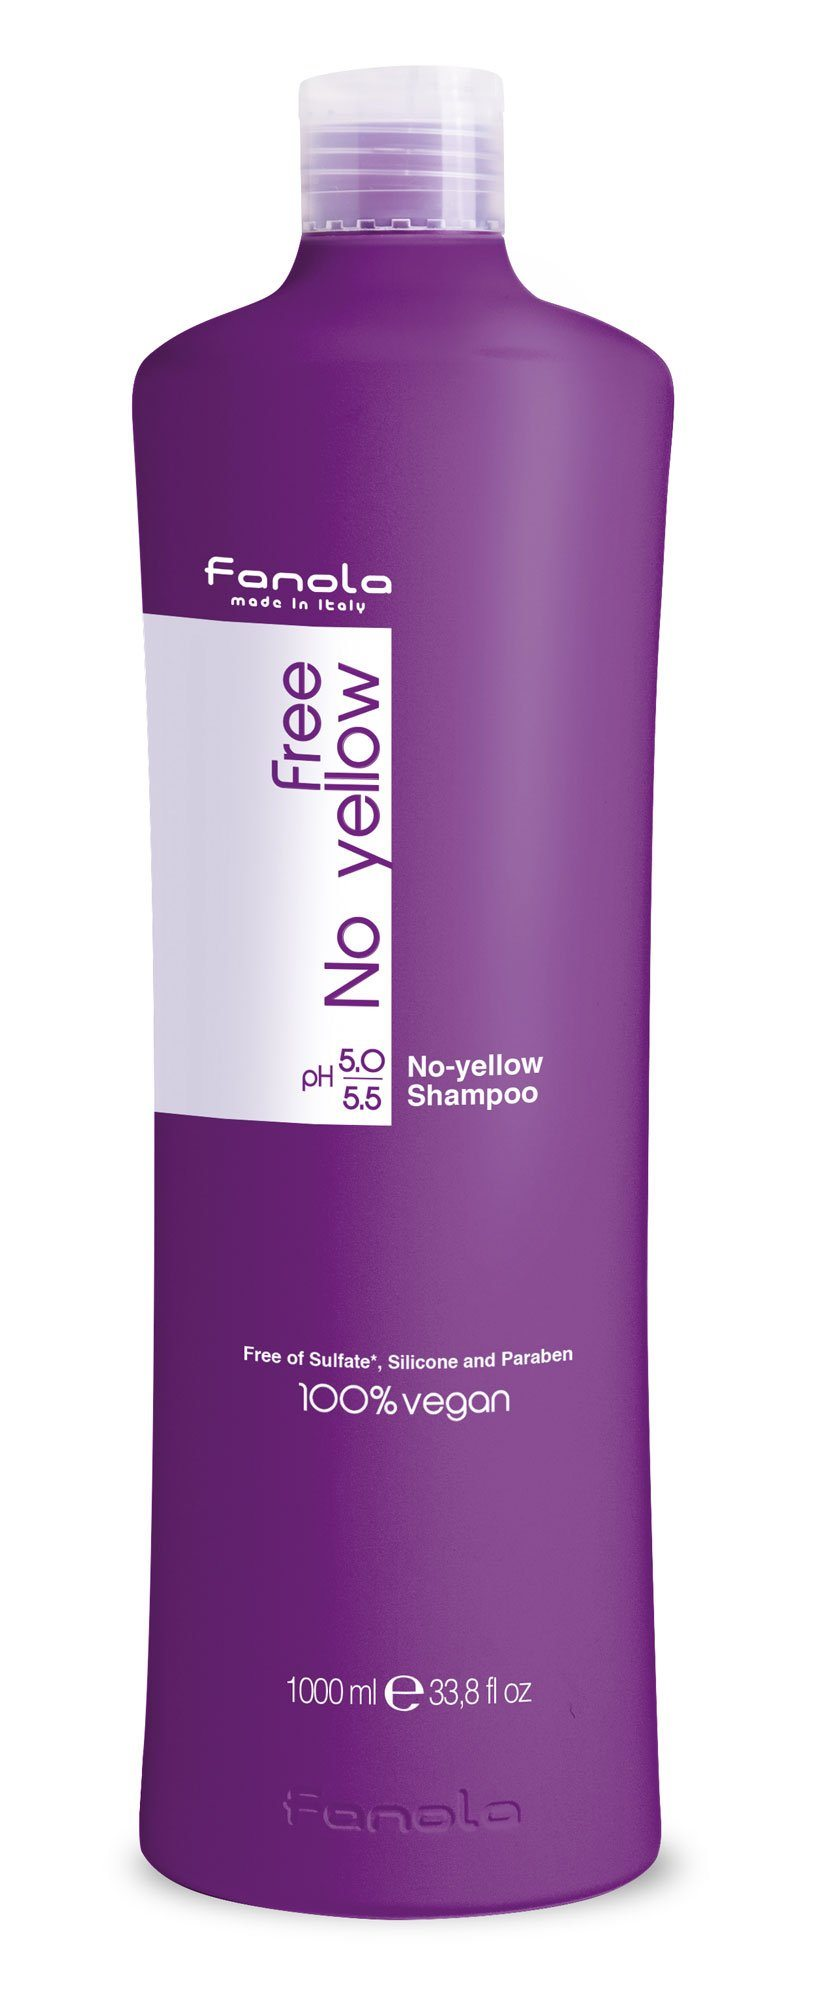 Fanola Free No Yellow Vegan Shampoo or Mask Hair Shampoos Fanola Shampoo, 1000 ml